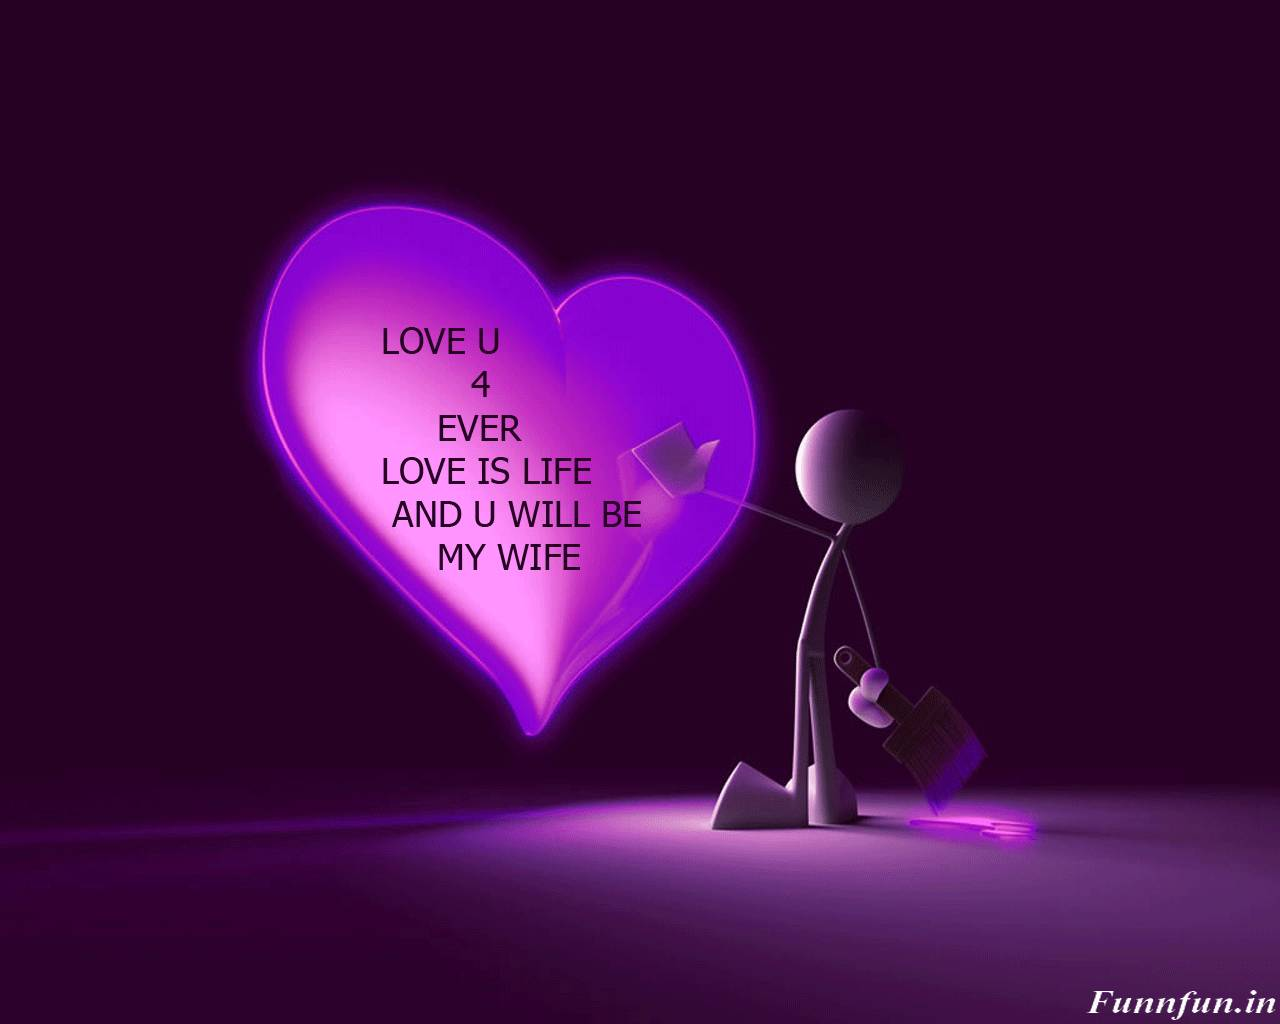 Free Download Amazing Funny Love Quotes Hd Wallpapers 1280x1024